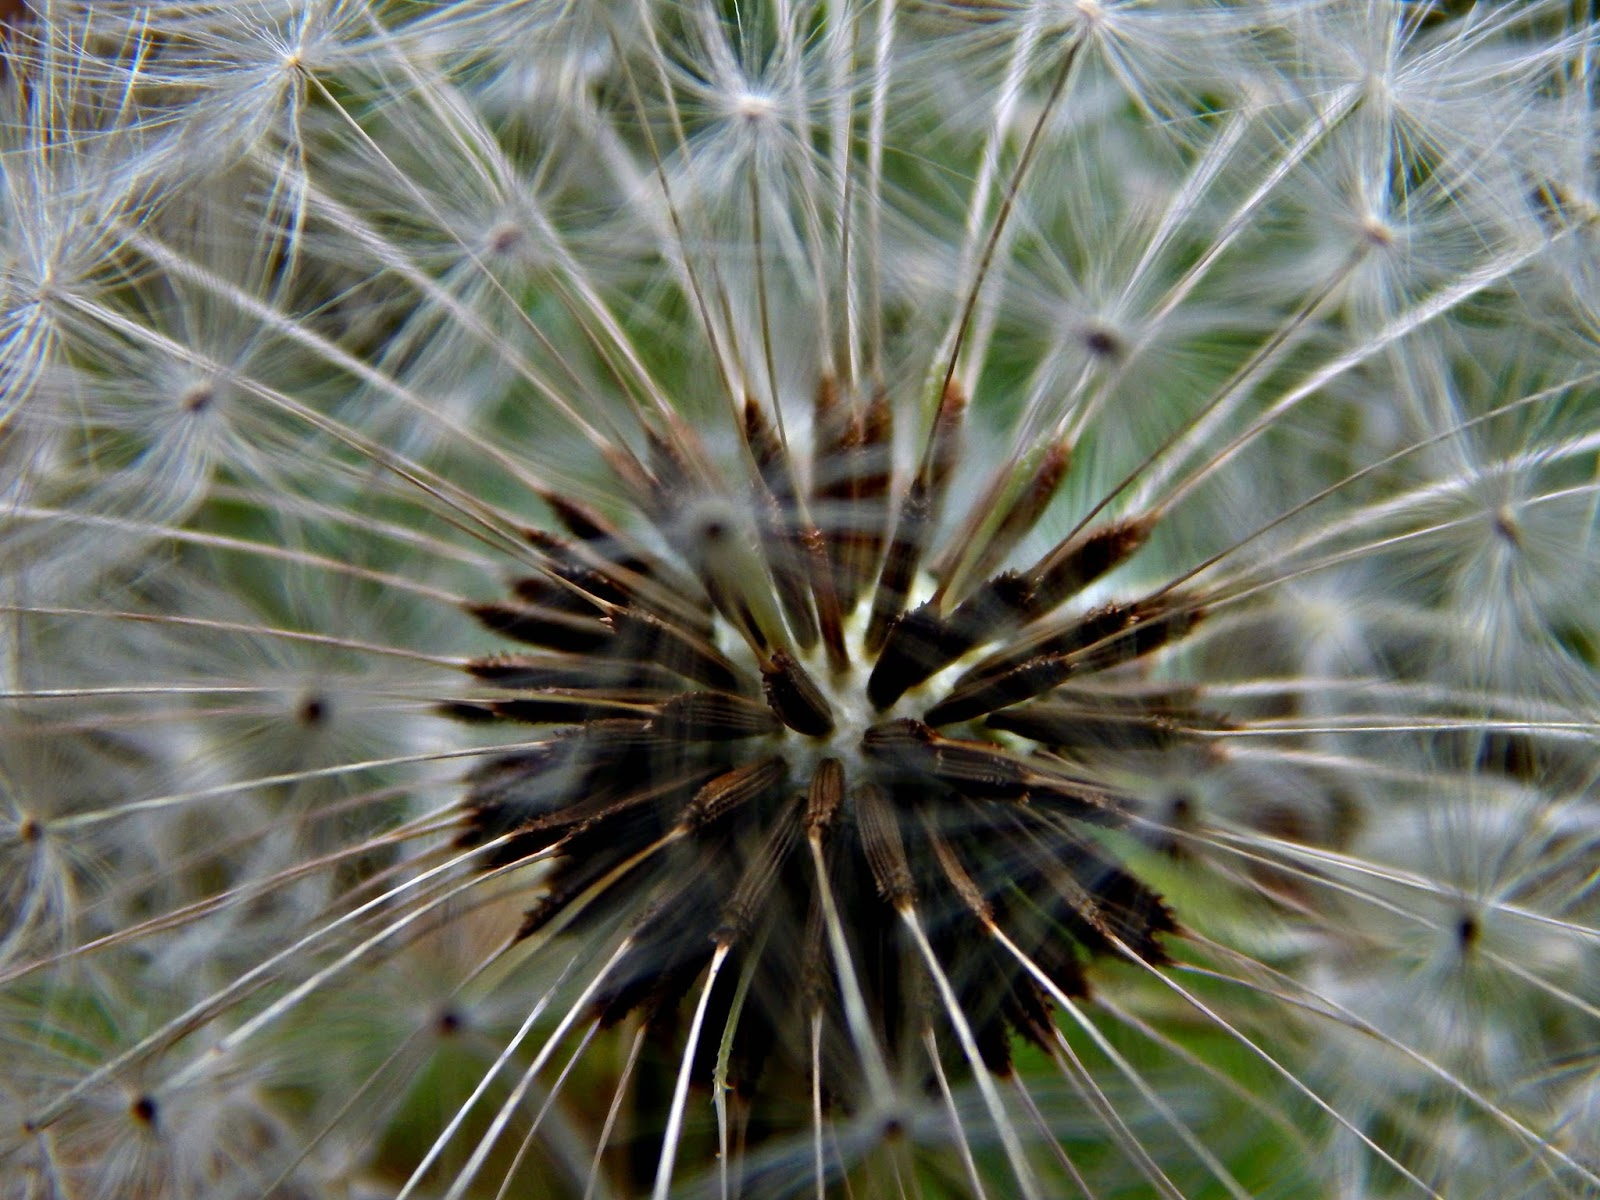 Lucys photography: Natural forms